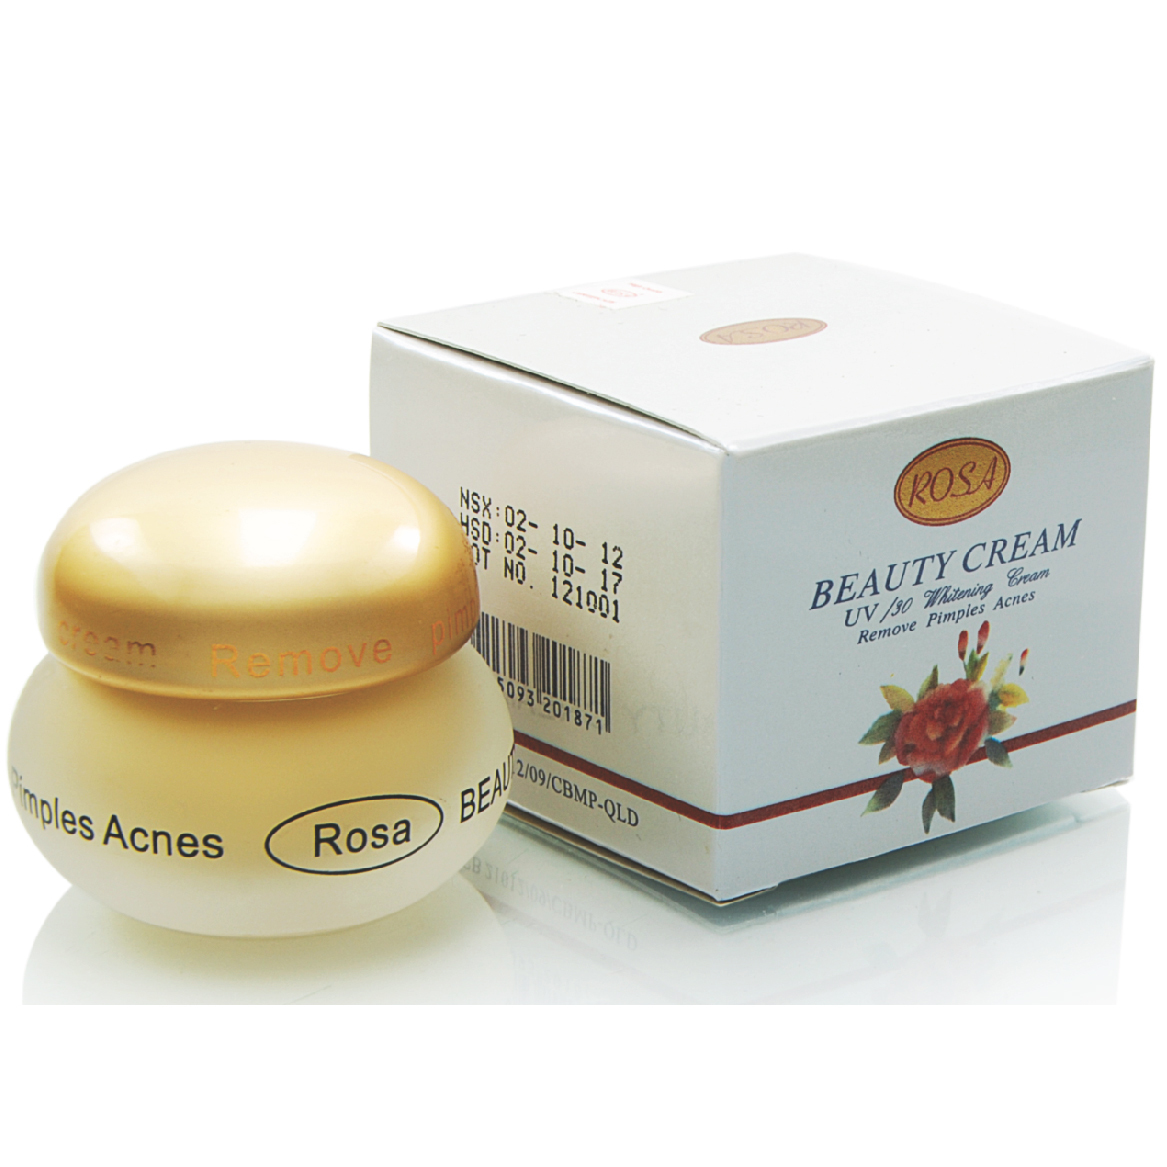 Kem dưỡng da ROSA Beauty cream UV/30 whitening cream - Mã SP: RS-001